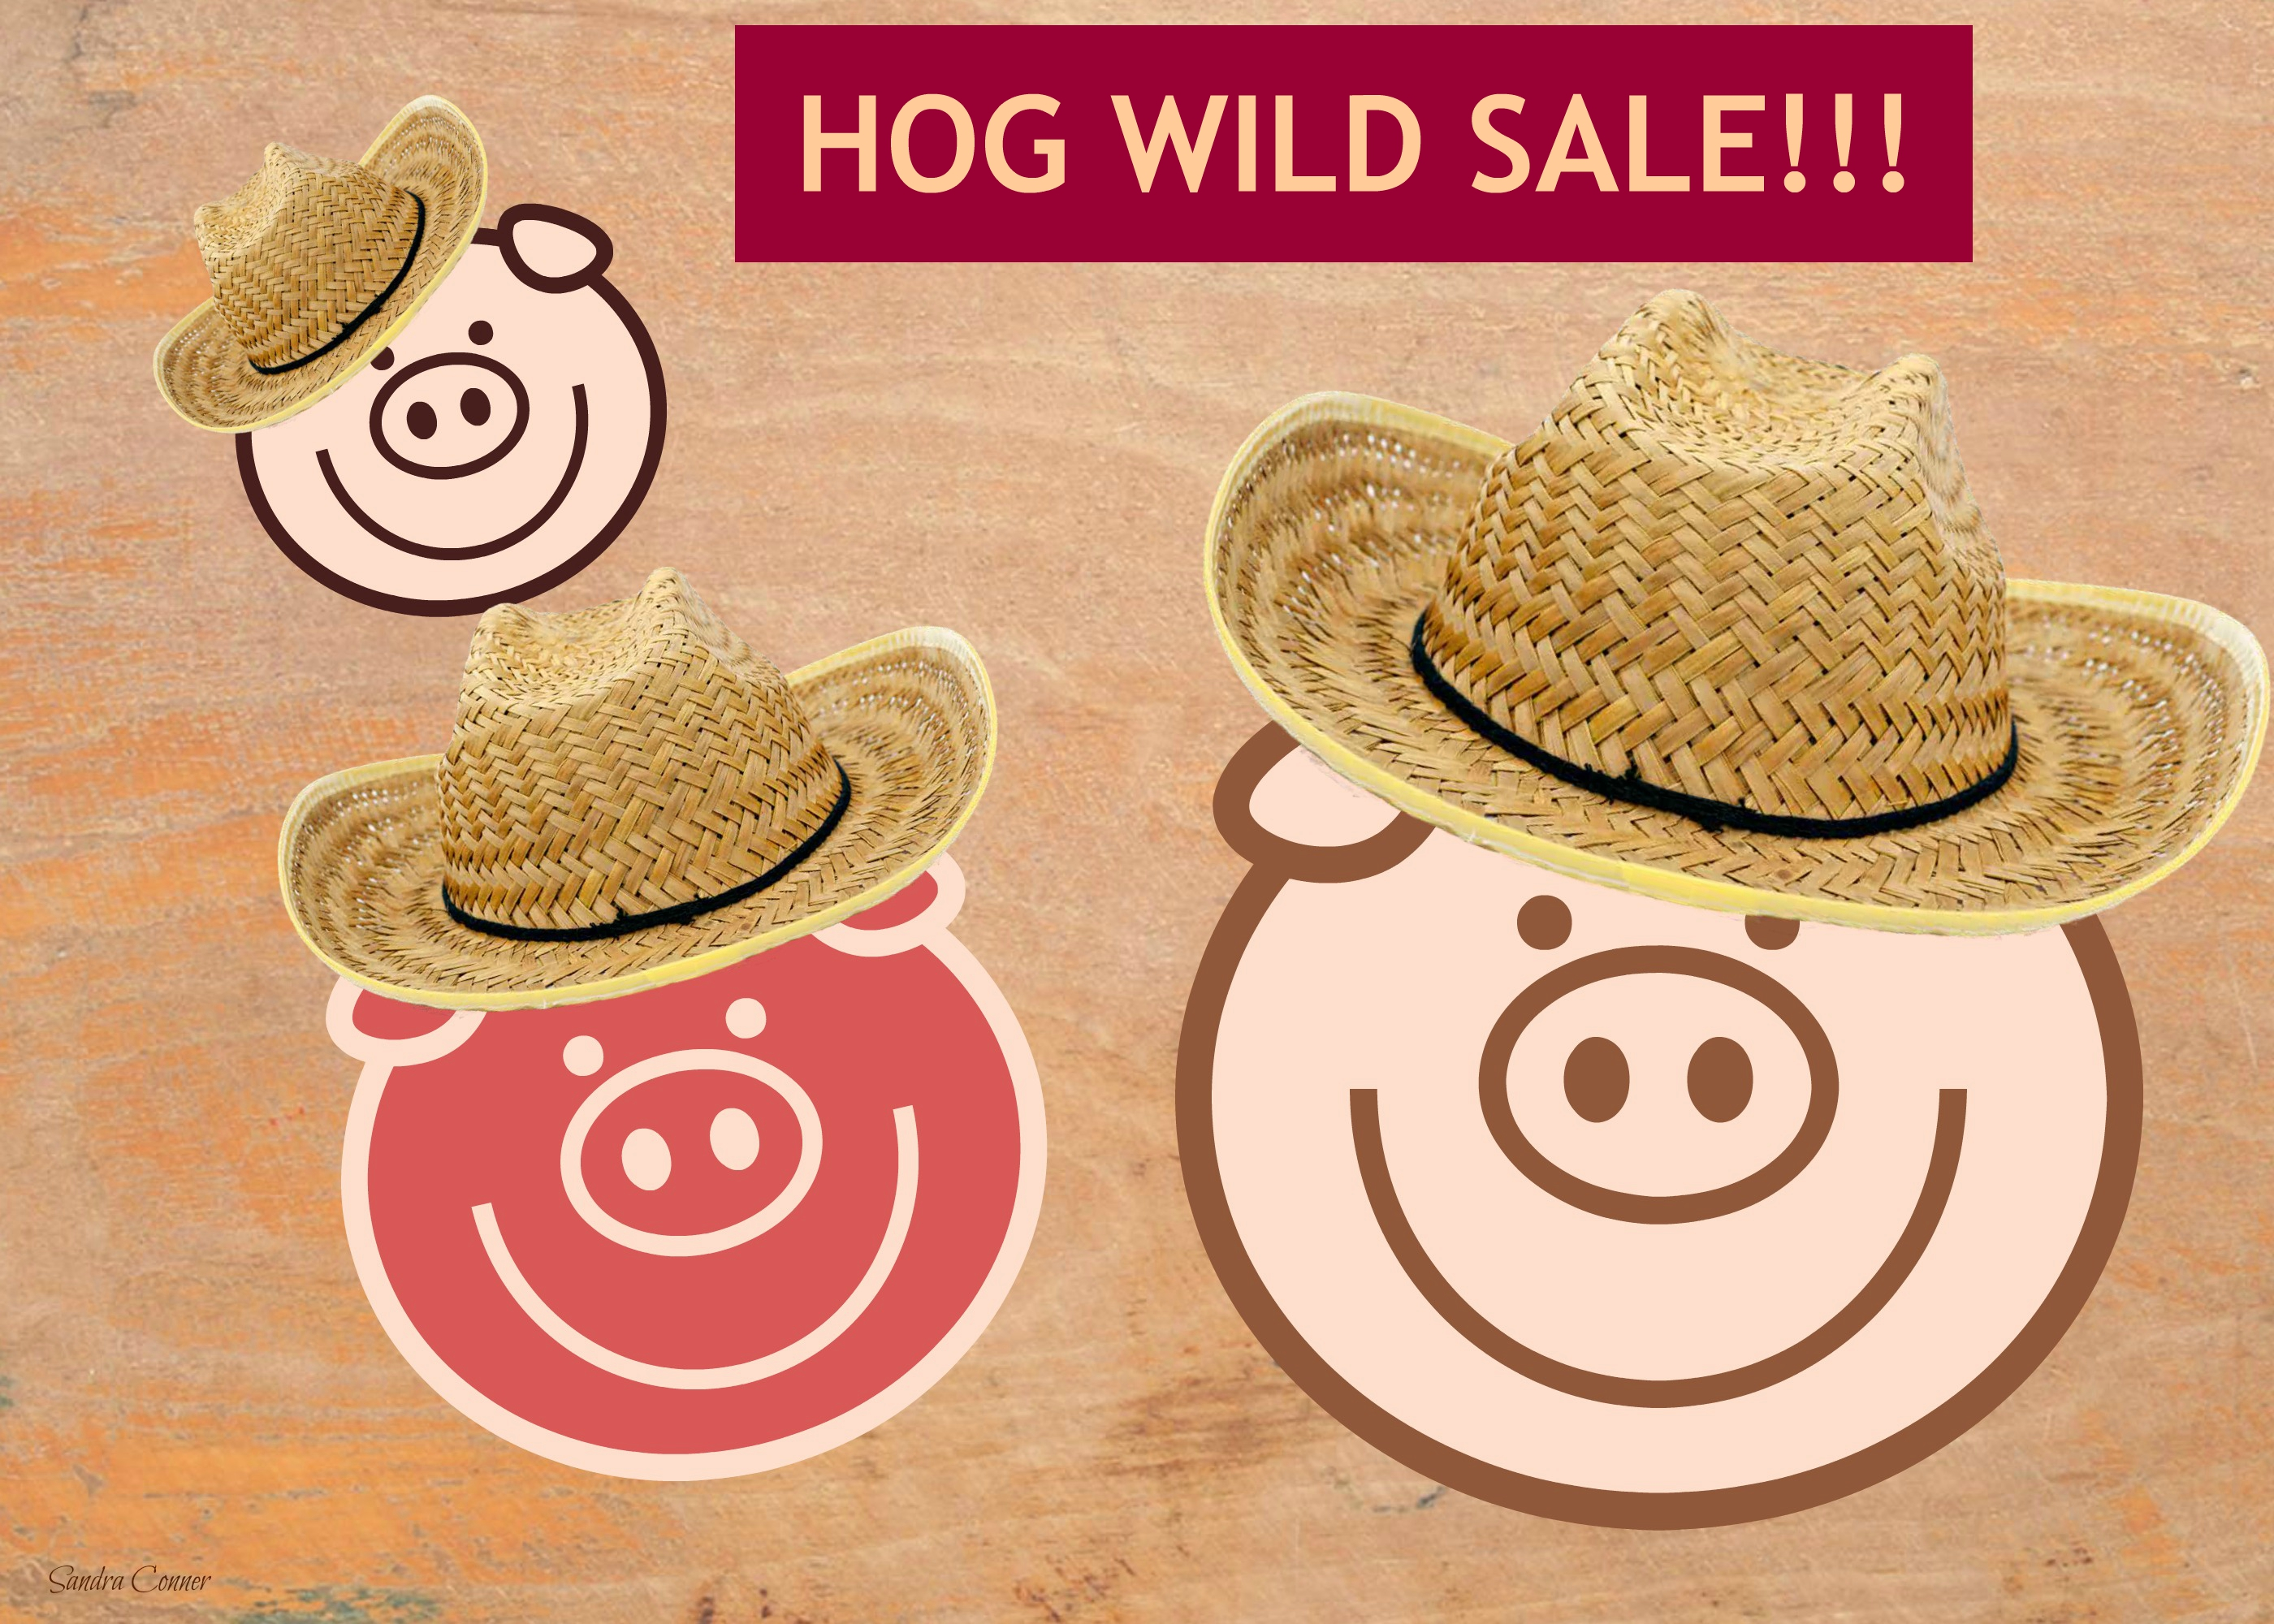 THREE PIGS WITH SALE SIGN